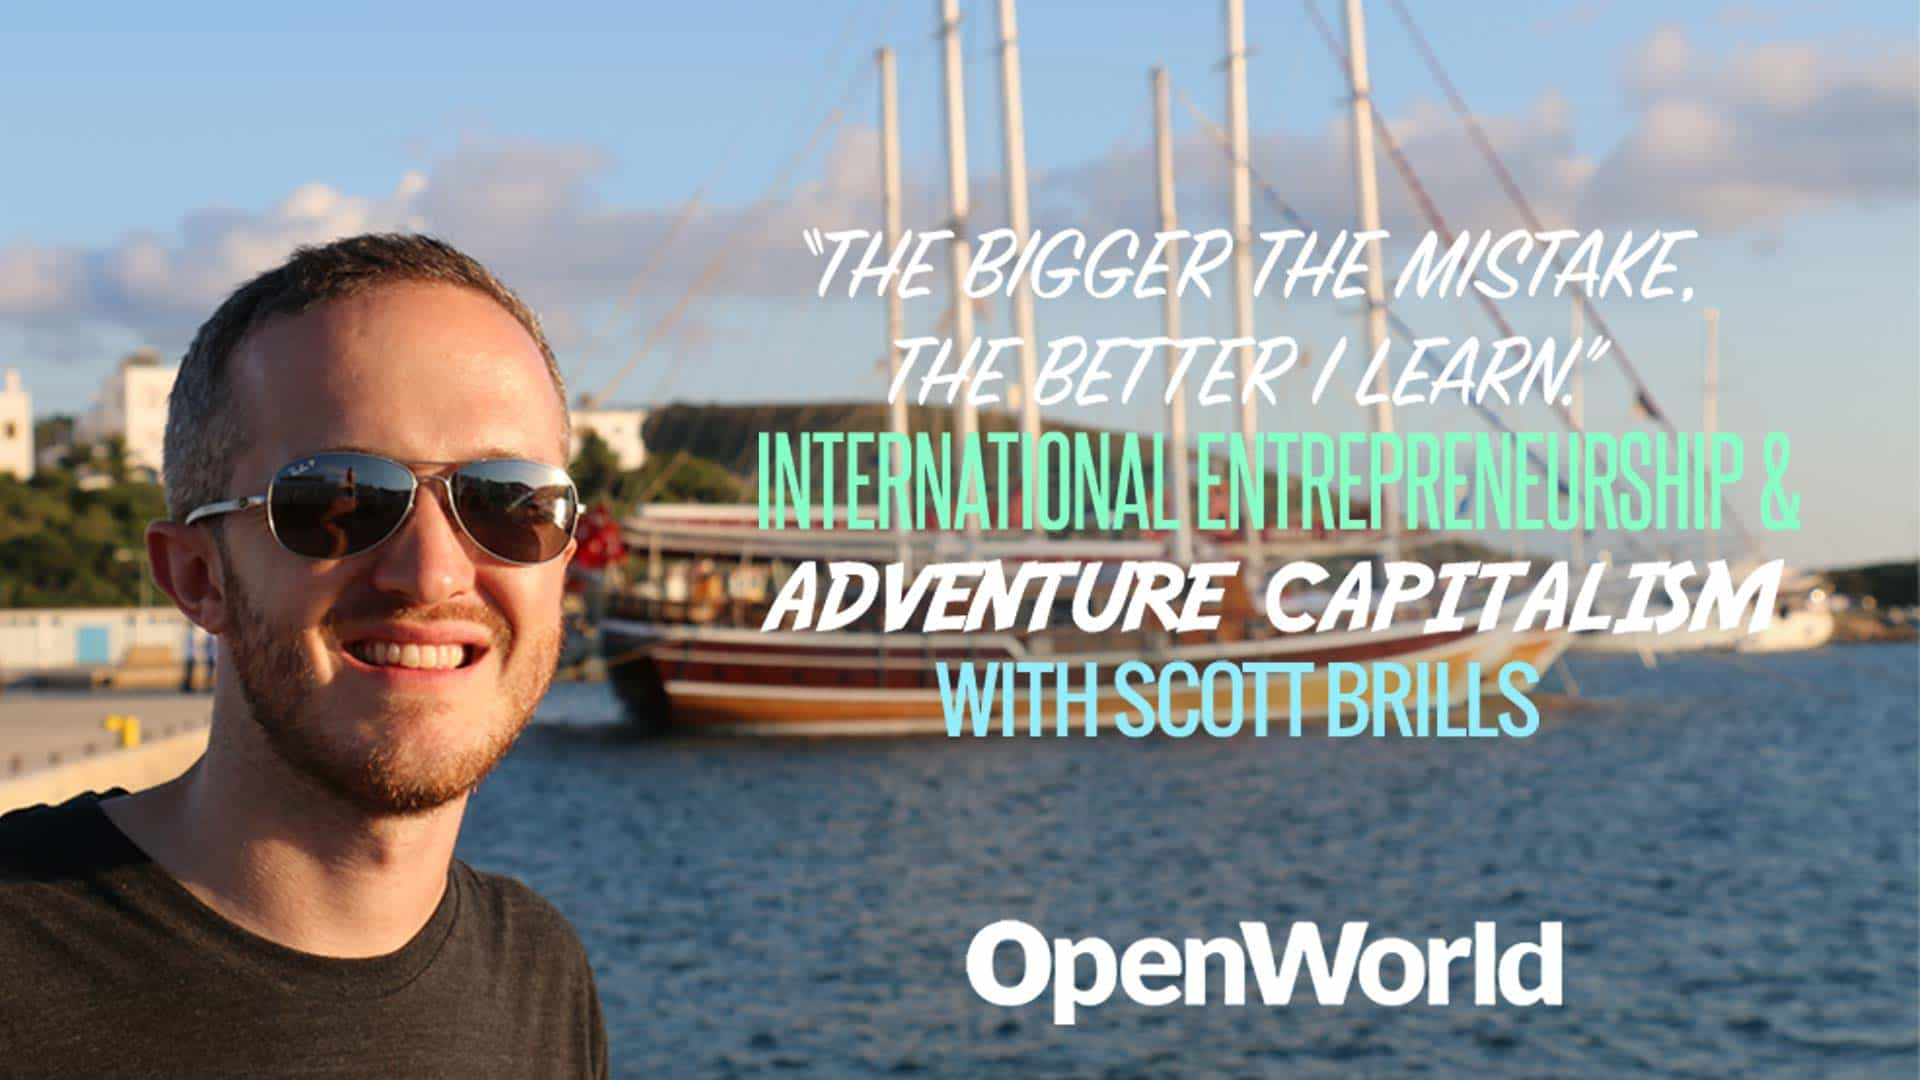 OpenWorld Magazine Podcast Interview